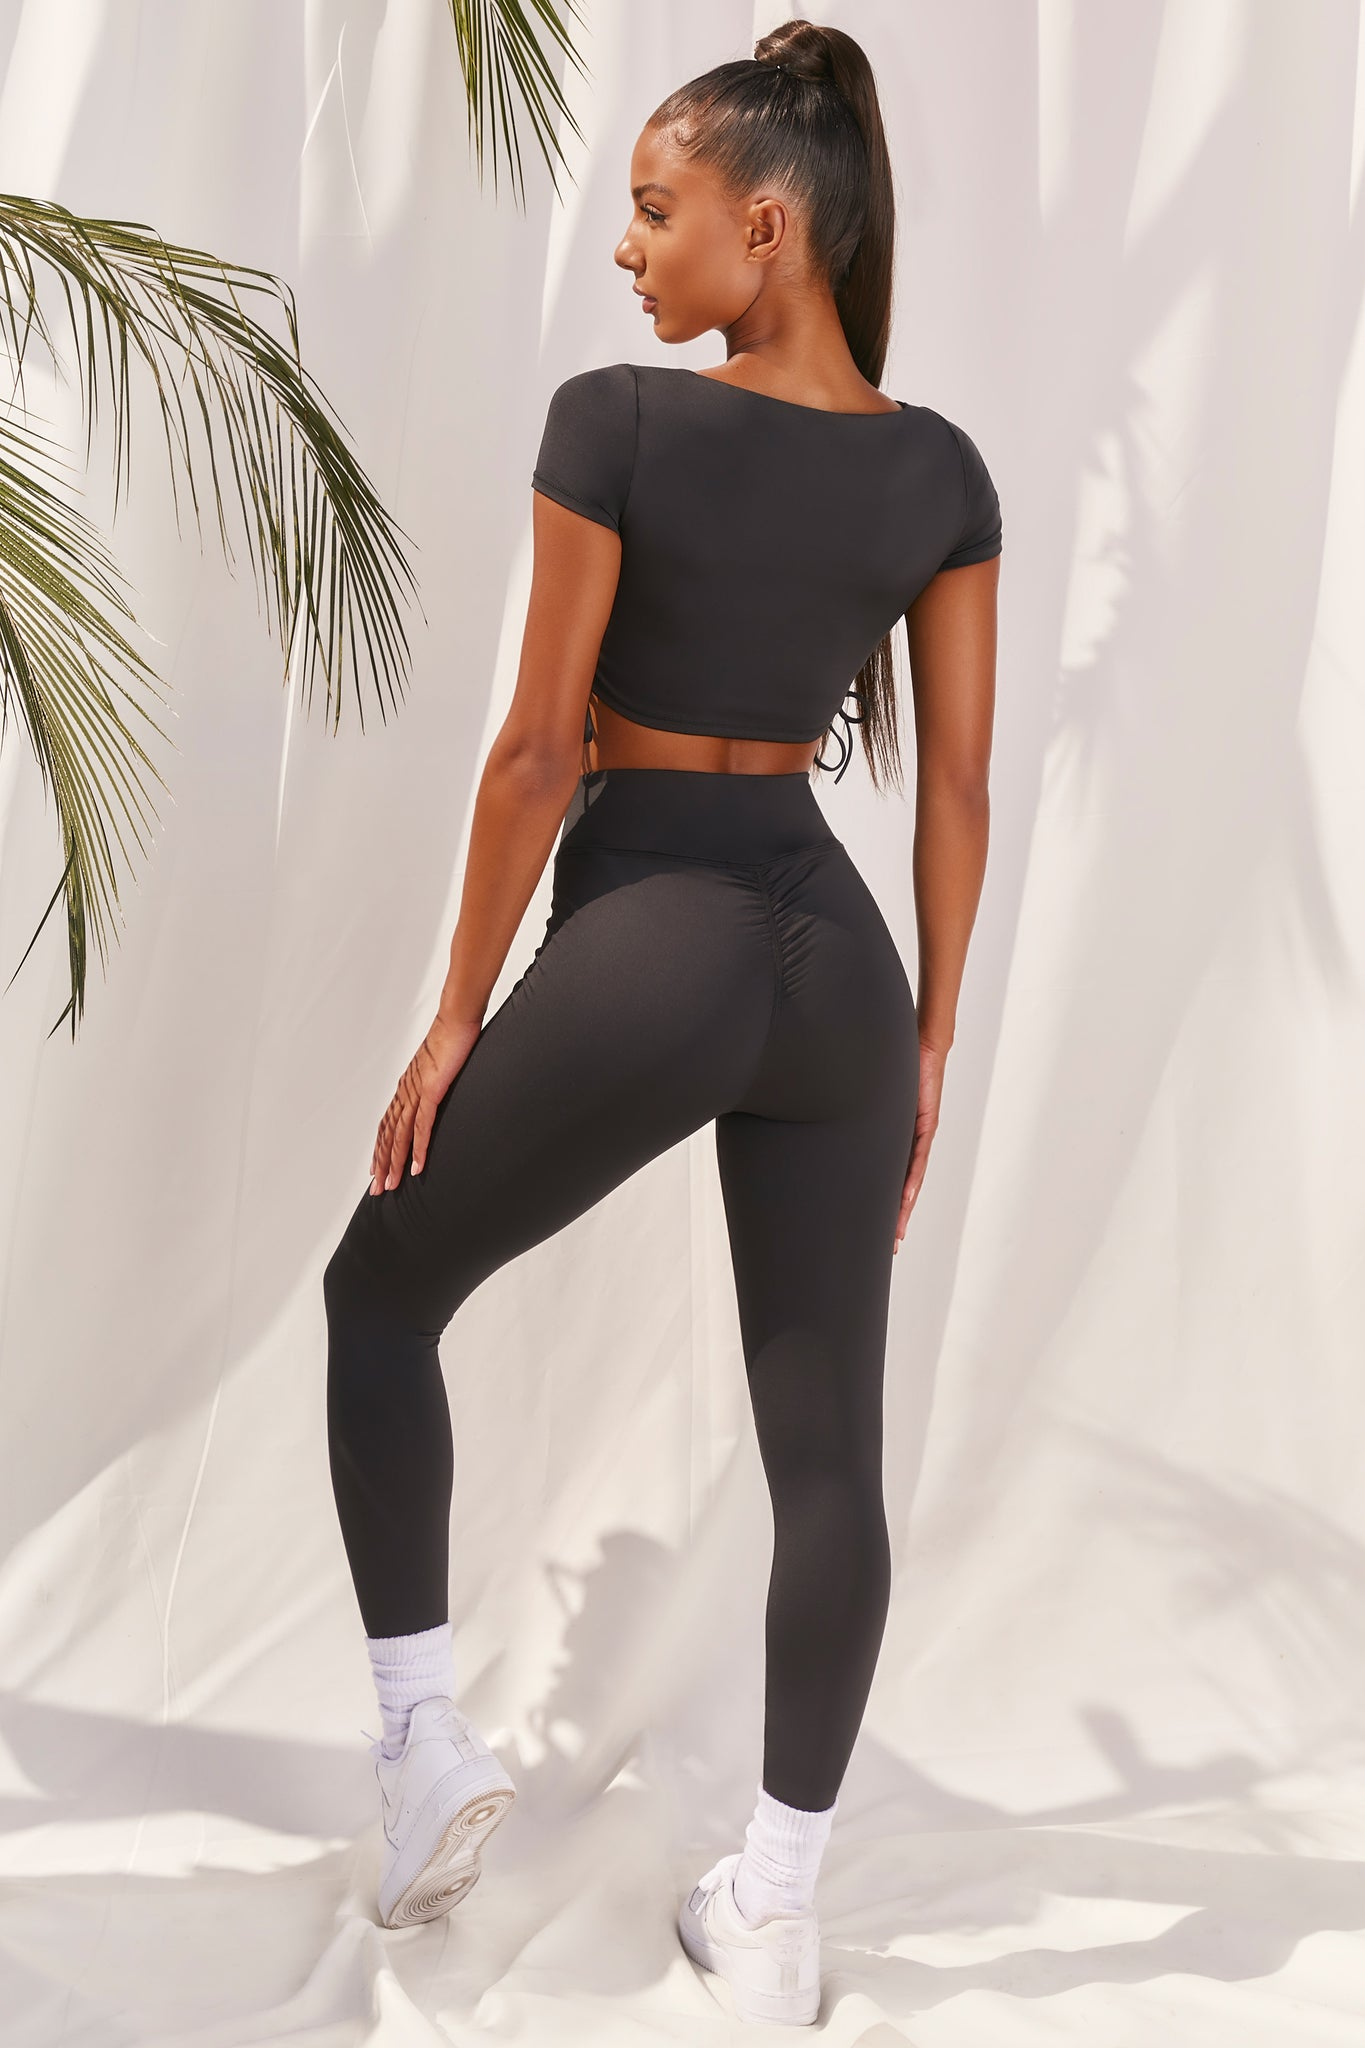 Plain black slinky high waisted full length gym leggings with rear ruched seam. Image 3 of 6.